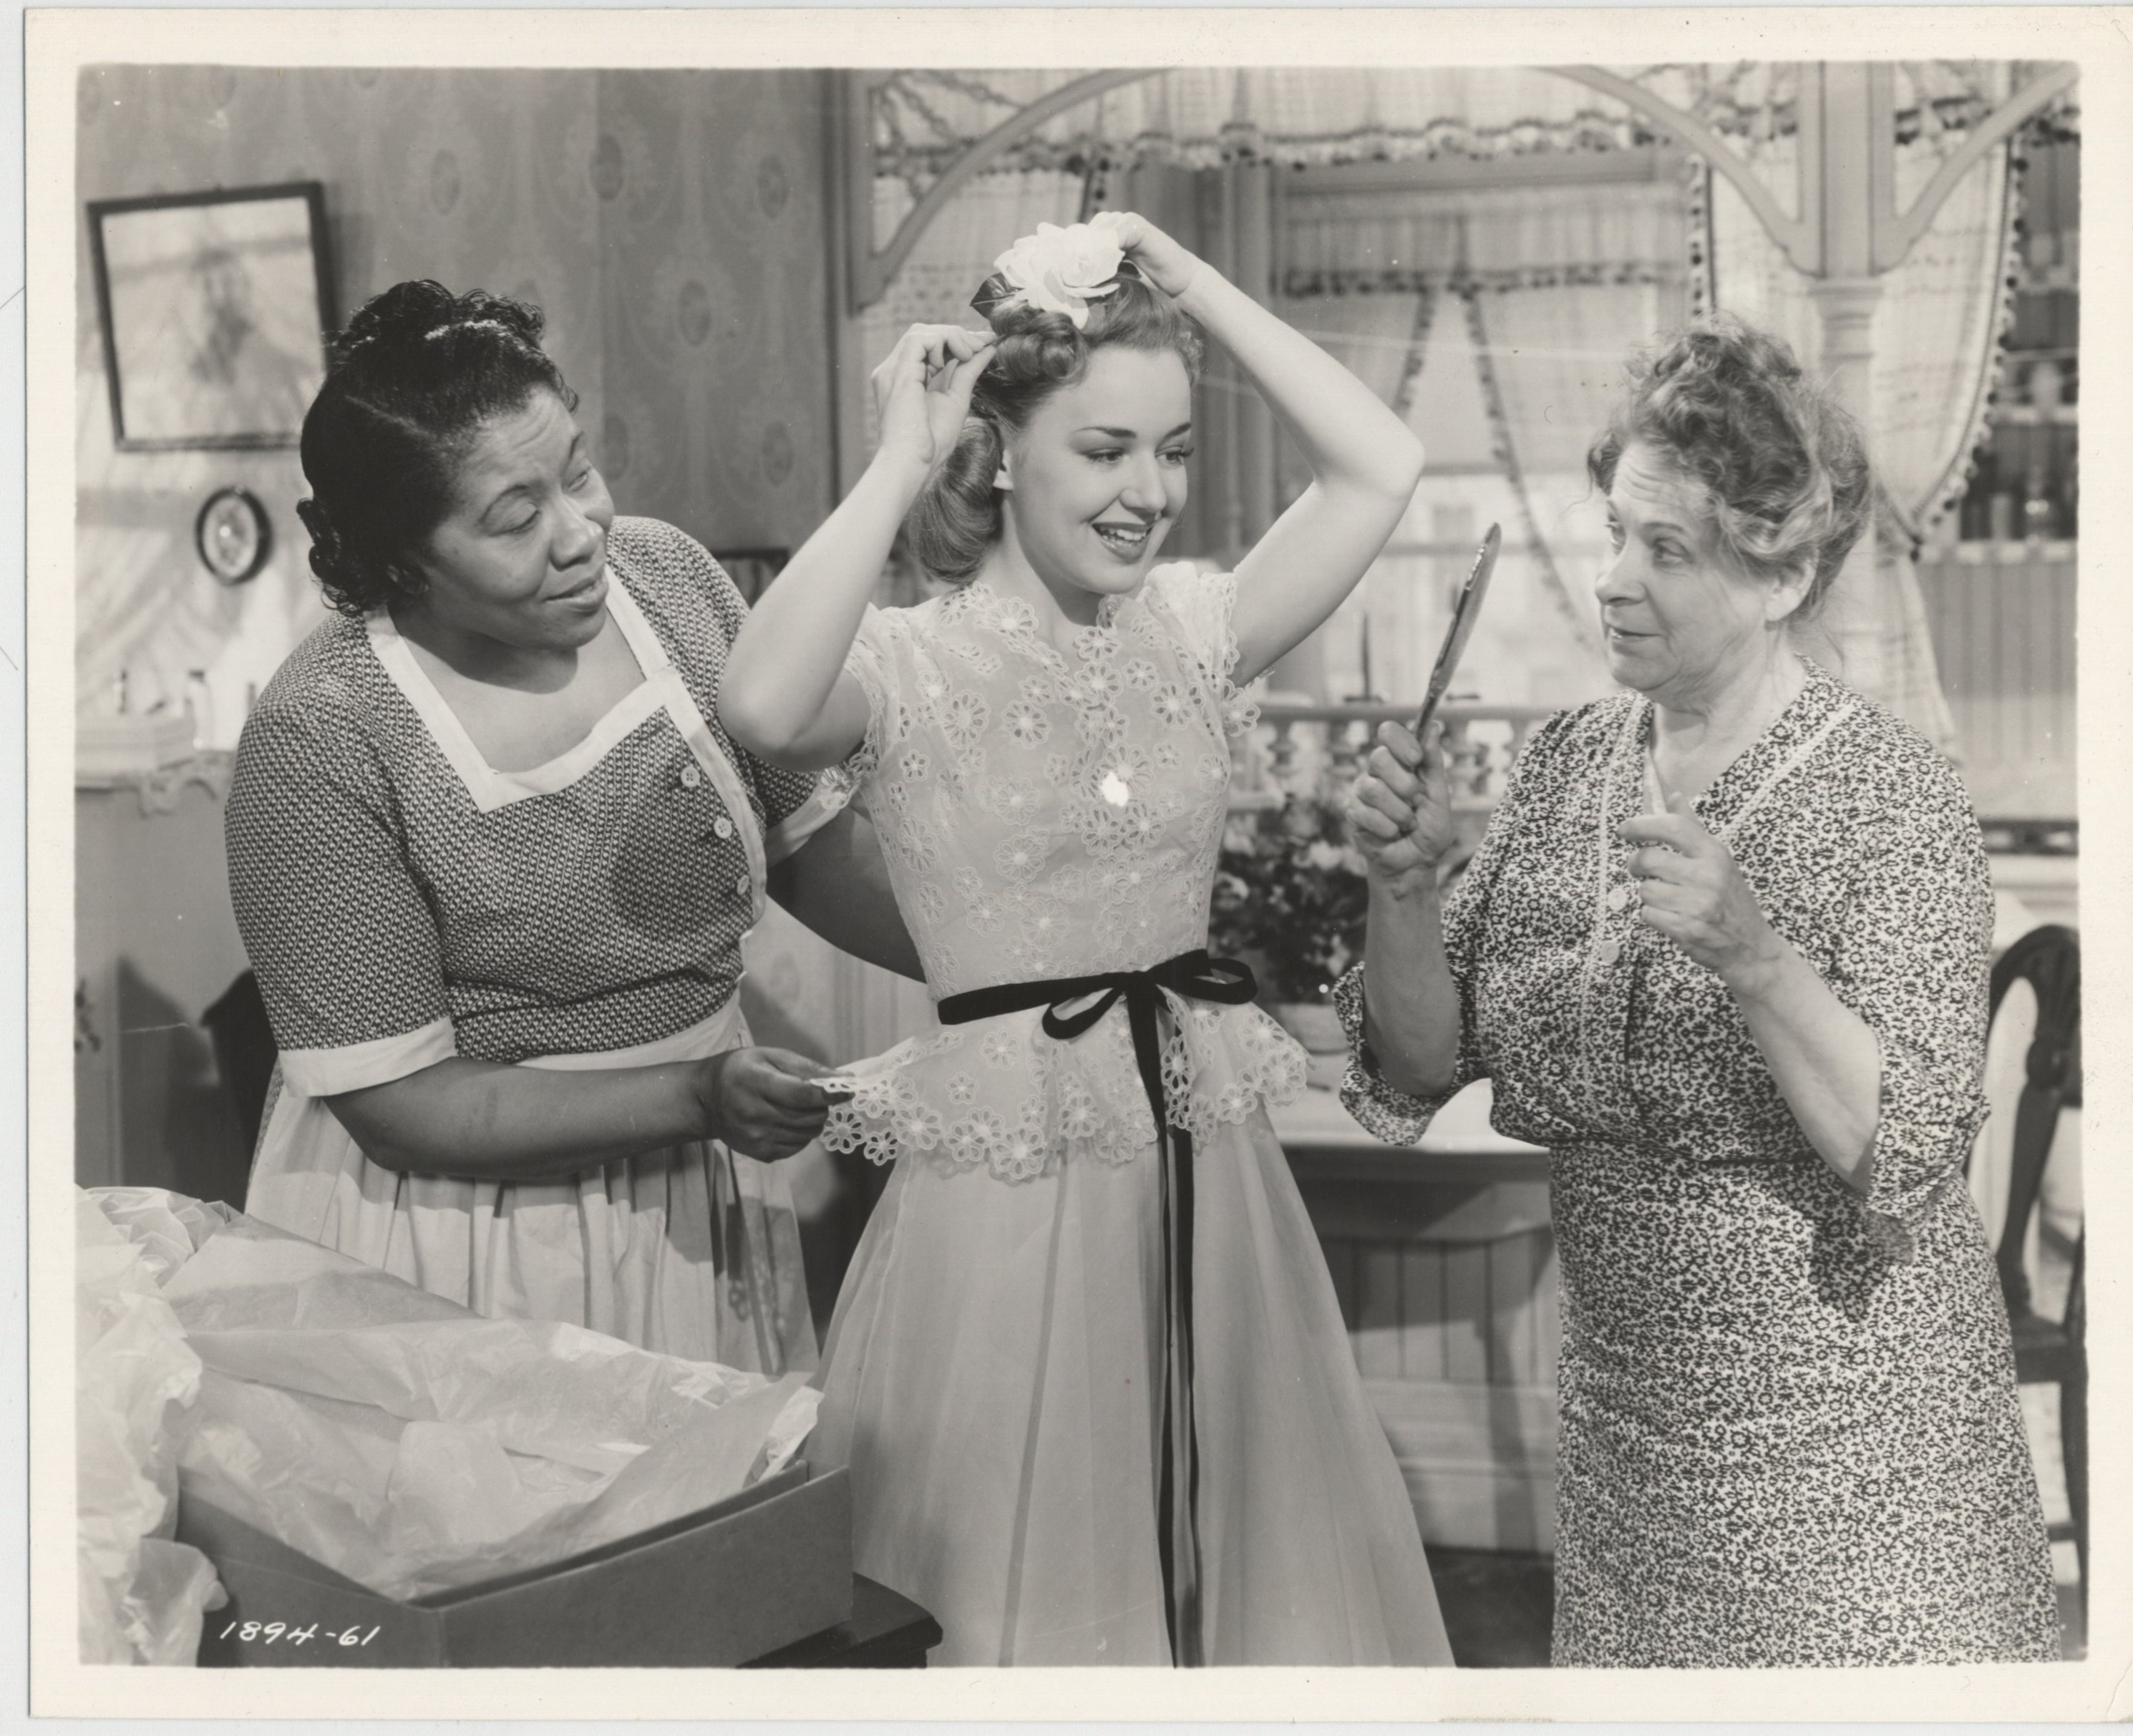 Maude Eburne, Lillian Randolph, and Anne Shirley in West Point Widow (1941)